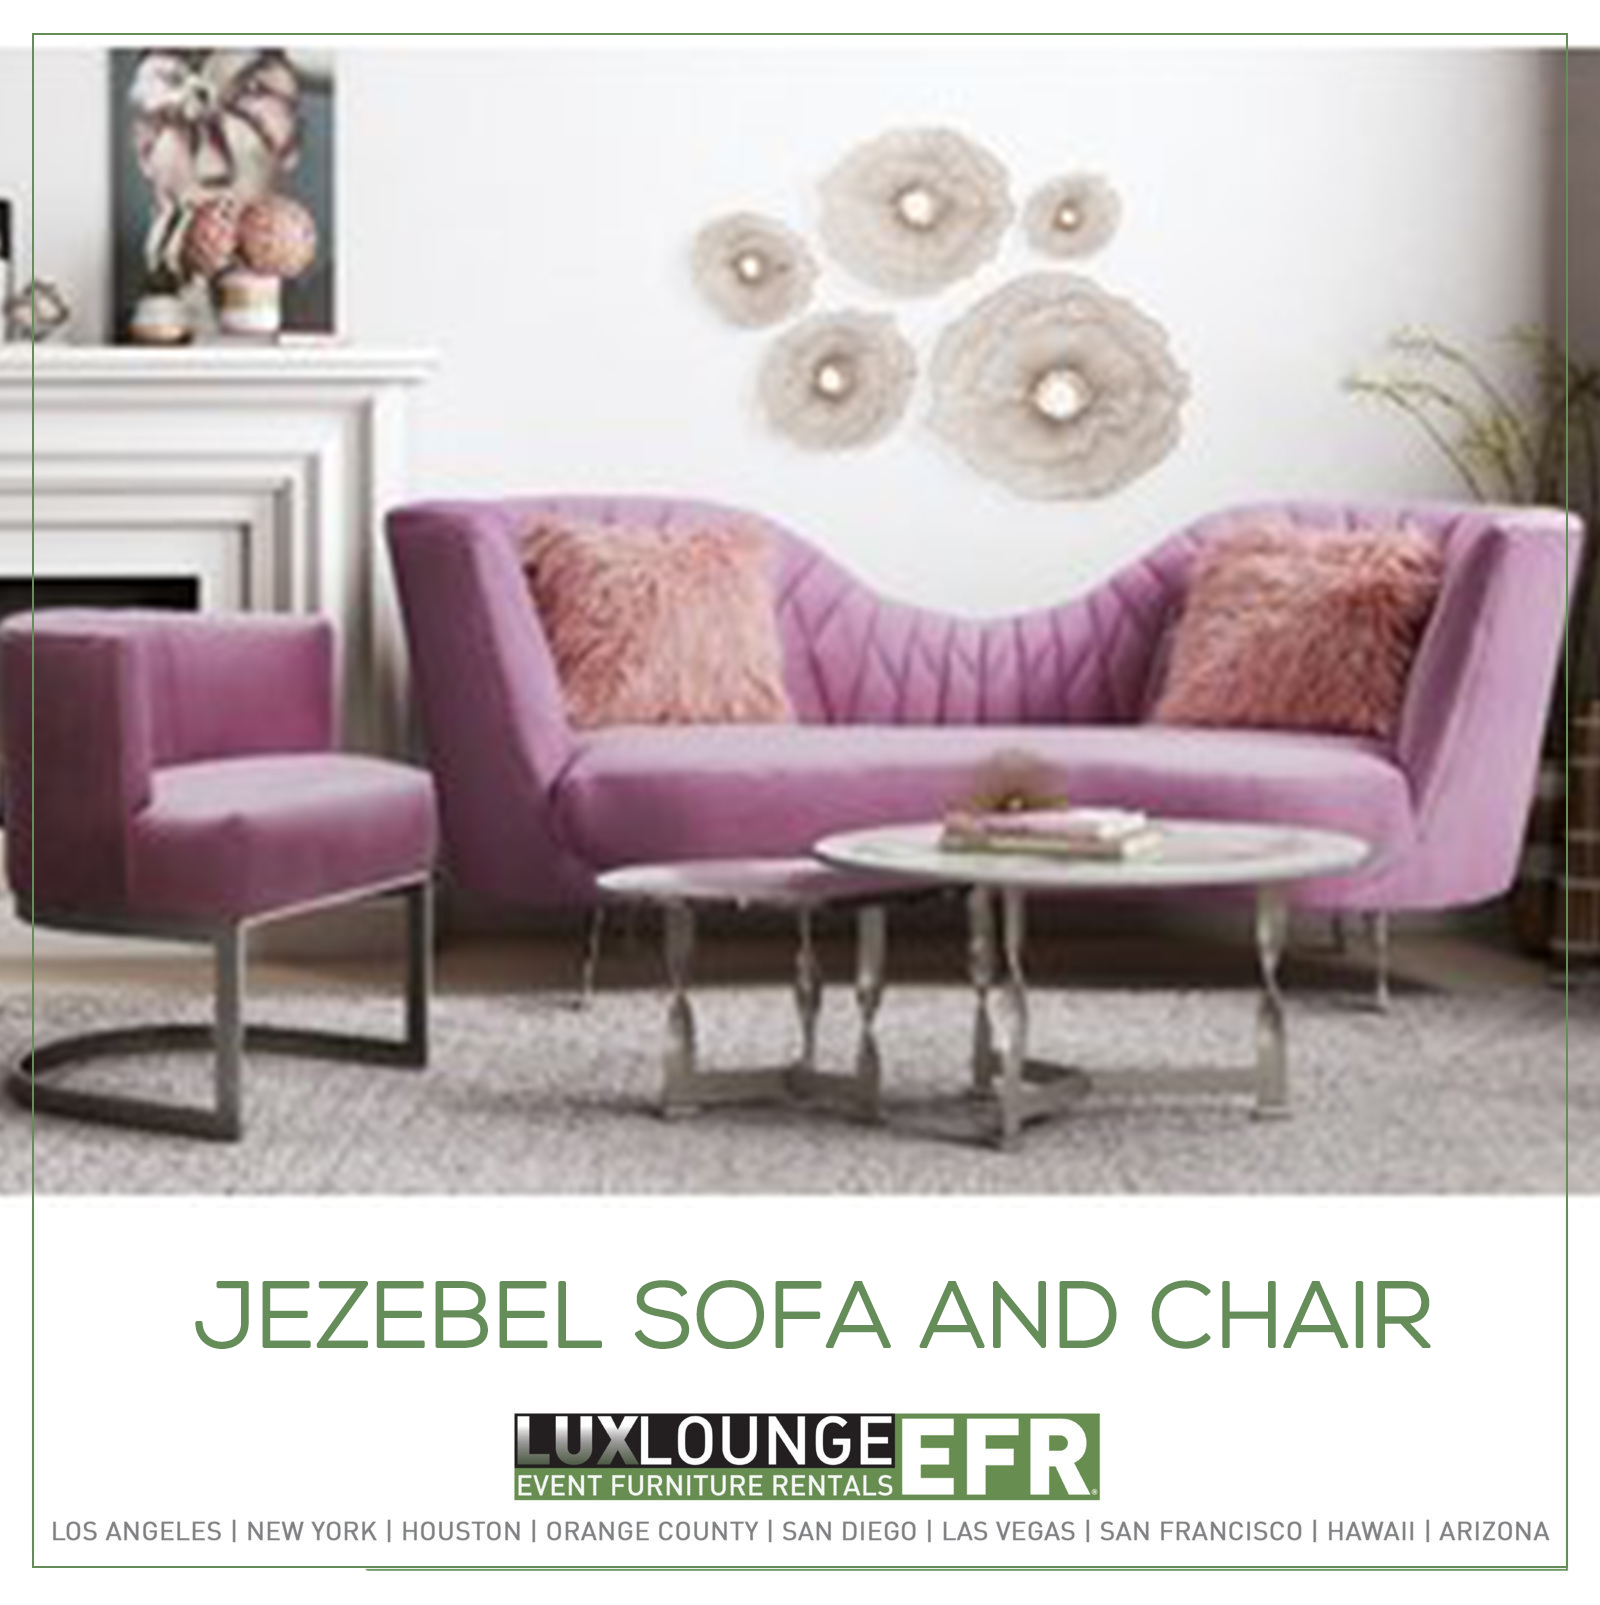 View our beautiful metropolitan furniture collections you can rent